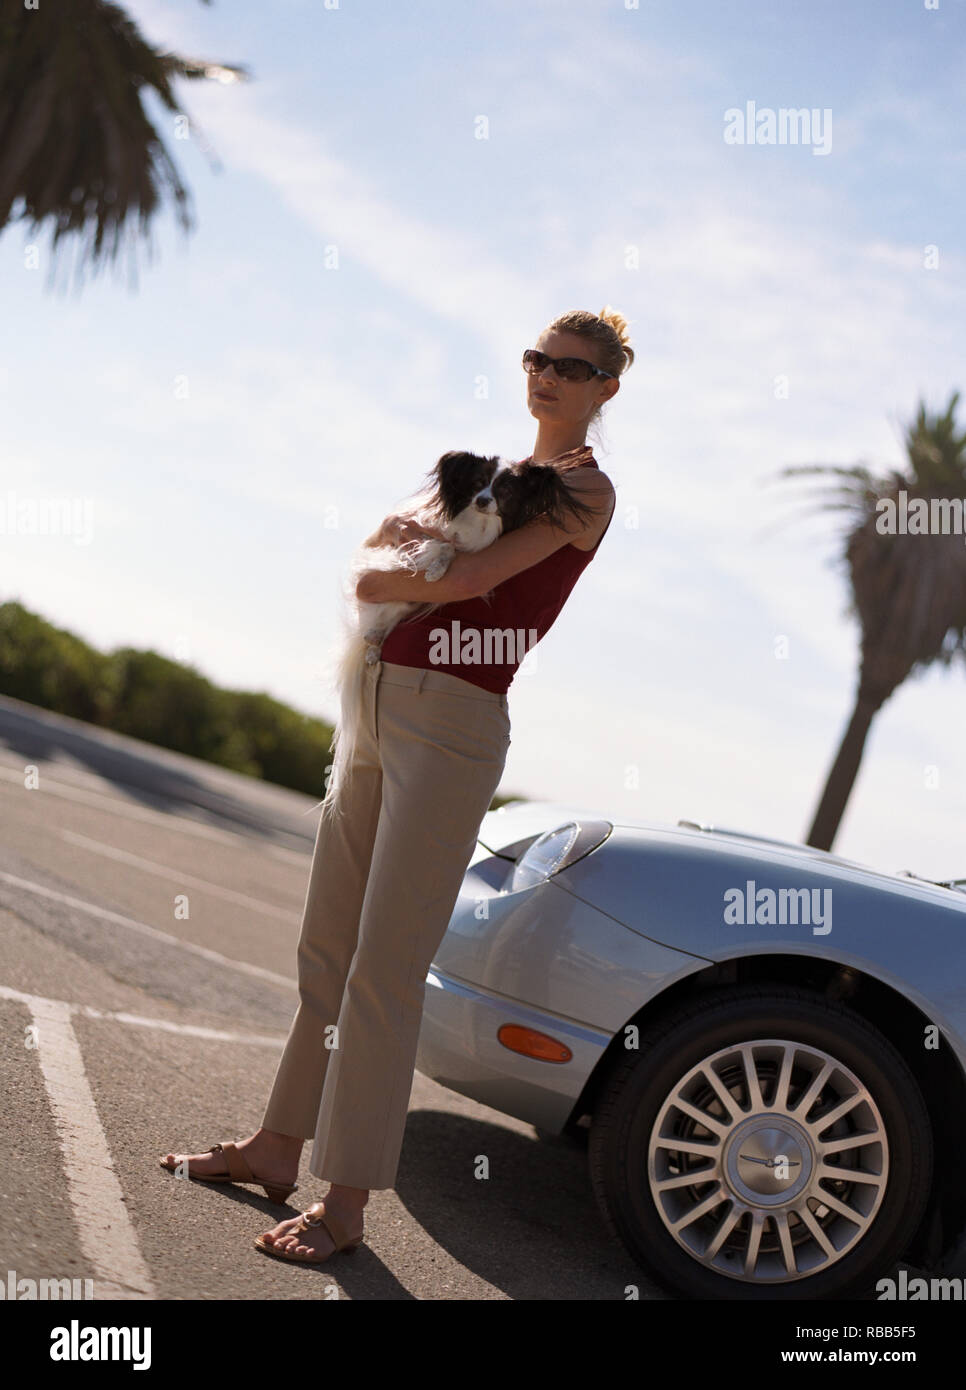 Portrait of a young woman holding a small dog while standing next to a car in a parking lot. - Stock Image